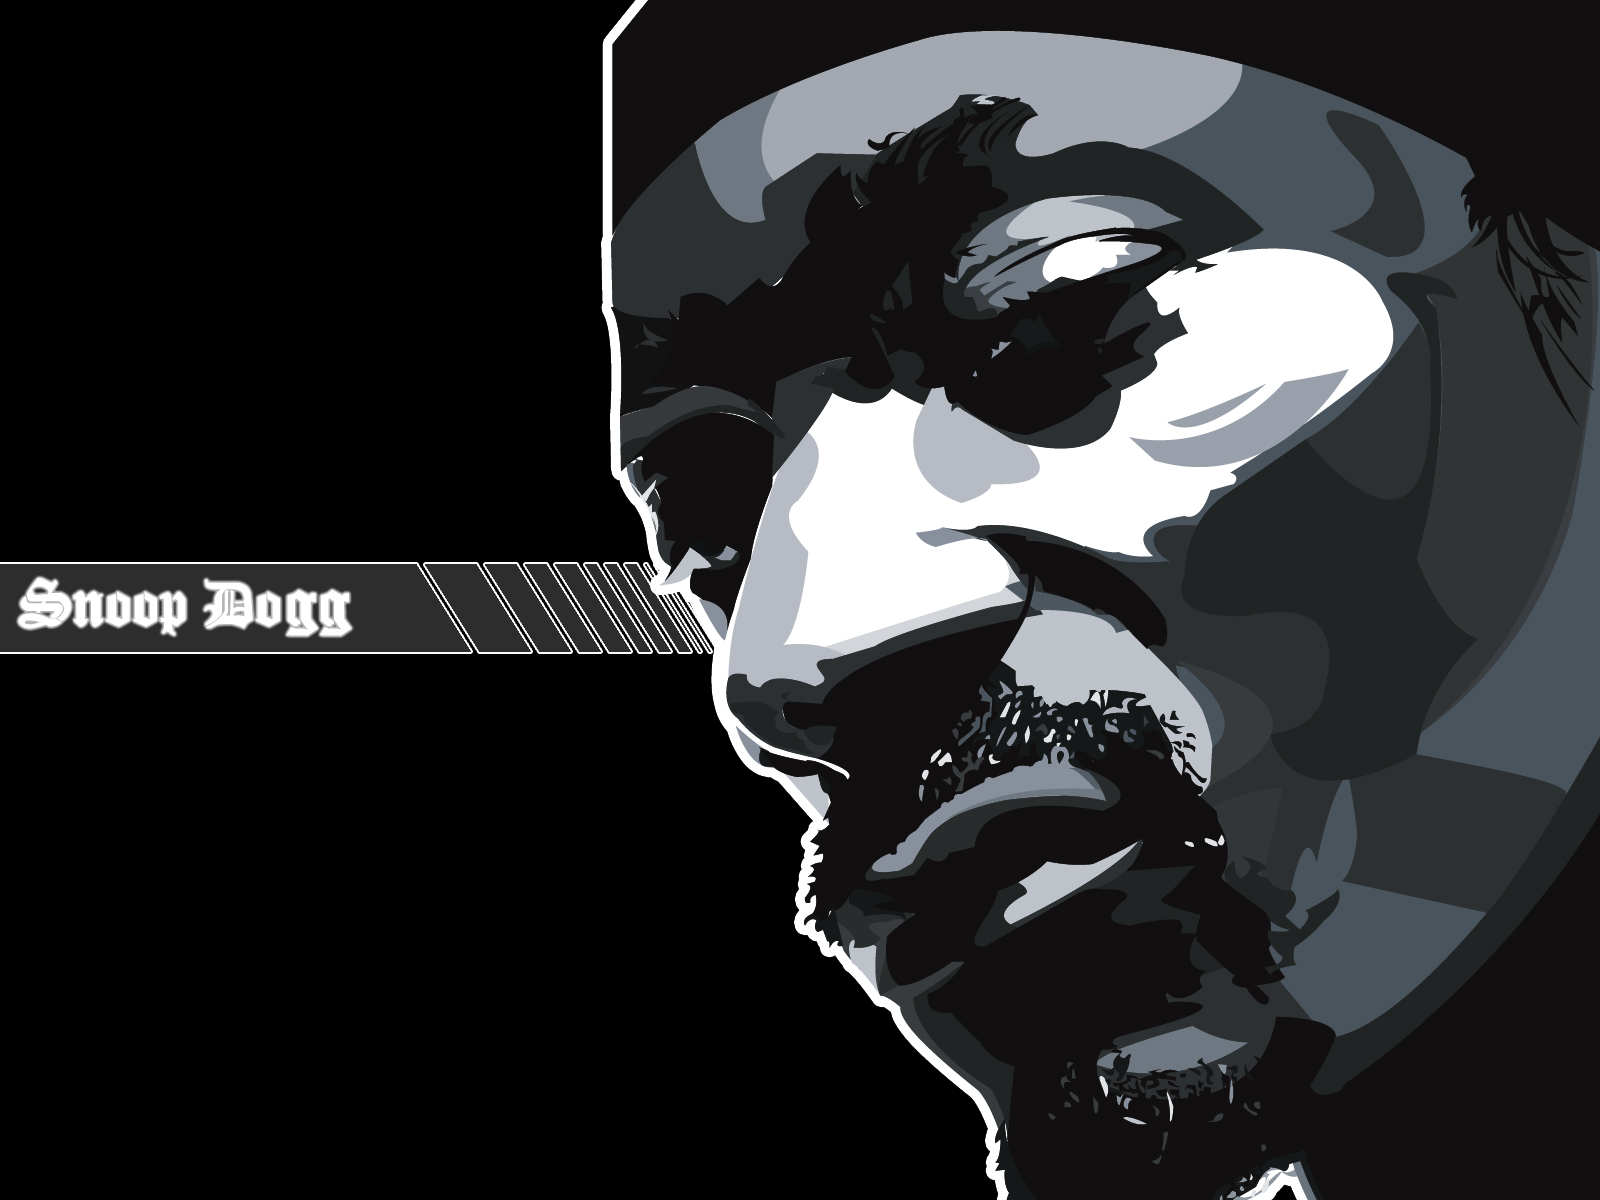 snoop dogg awesome hd graphic art wallpapers hd